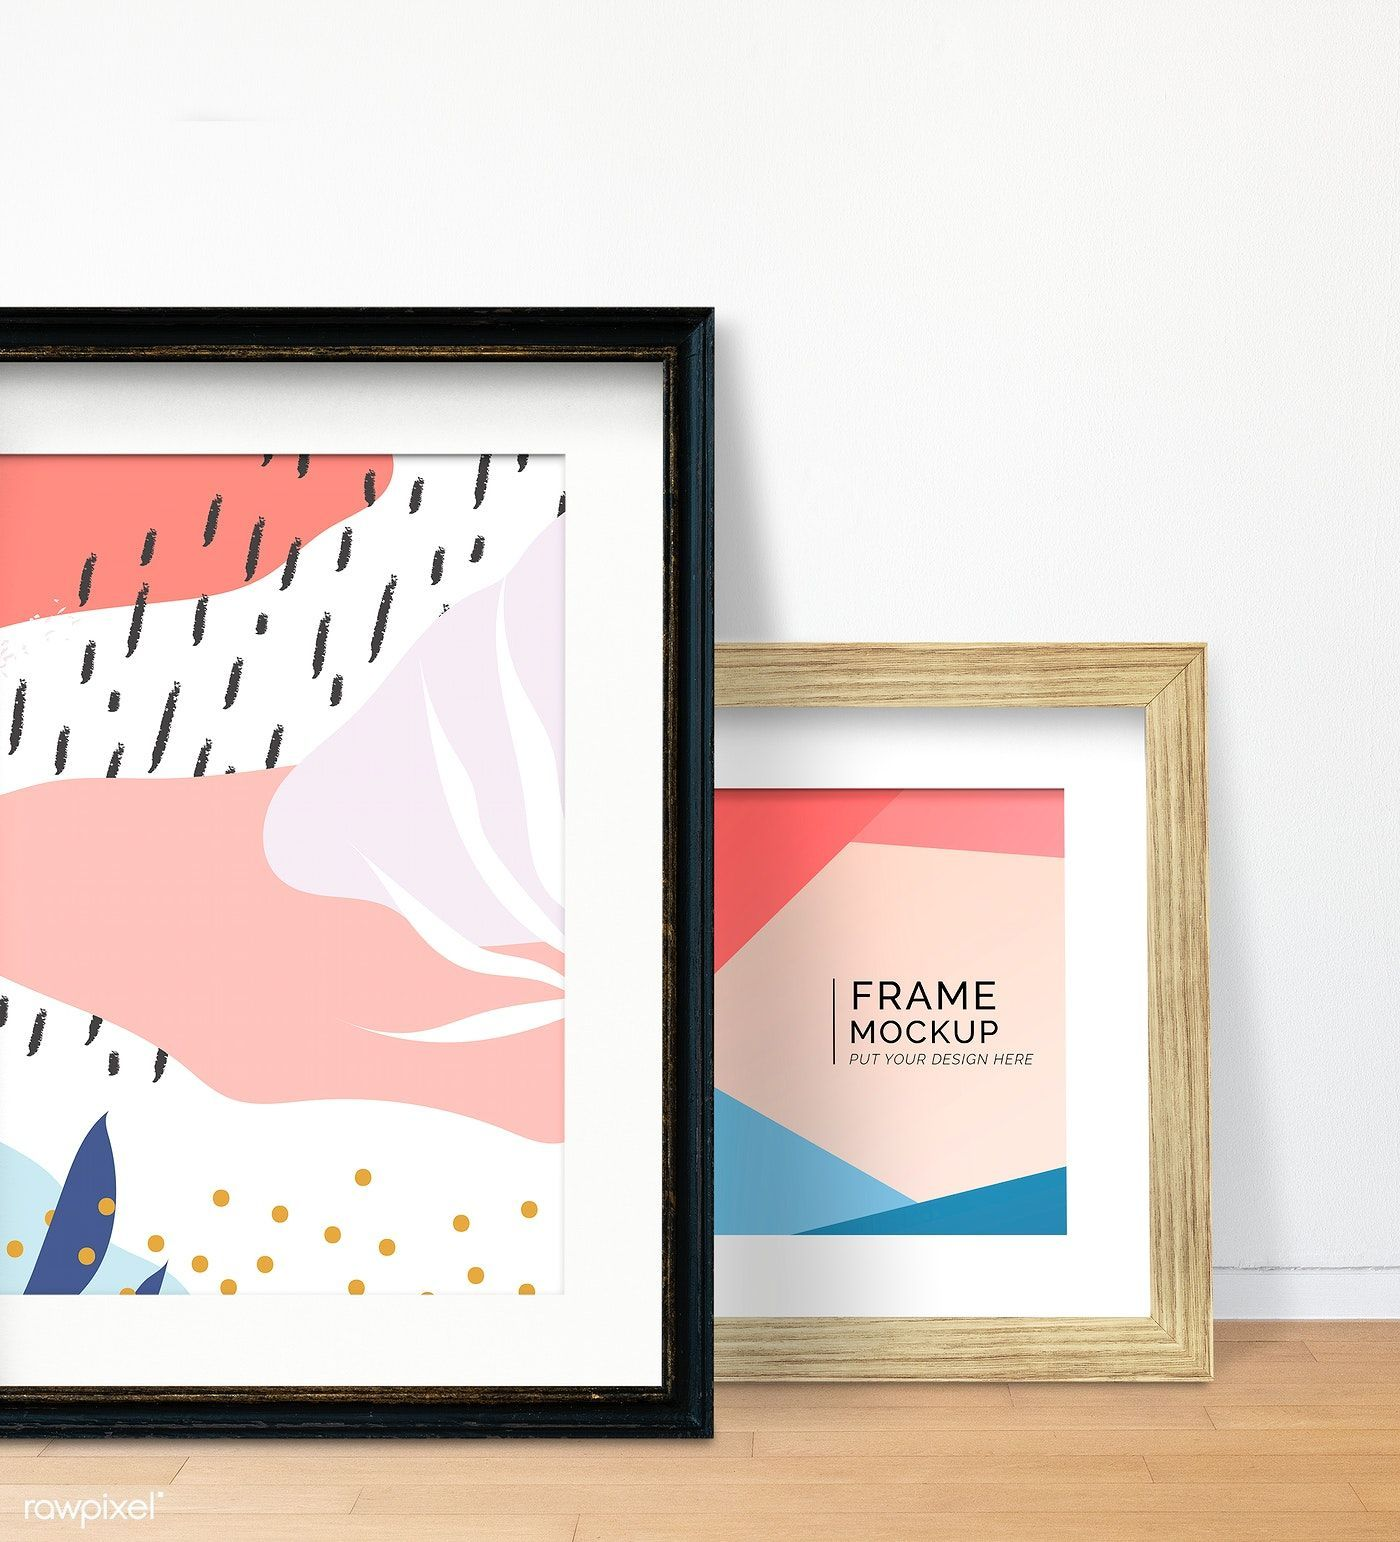 Download premium psd of Memphis design frame mockup against a wall 586047 #memphisdesign Memphis design frame mockup against a wall | premium image by rawpixel.com / Aom Woraluck / Card / fon / HwangMangjoo #memphisdesign